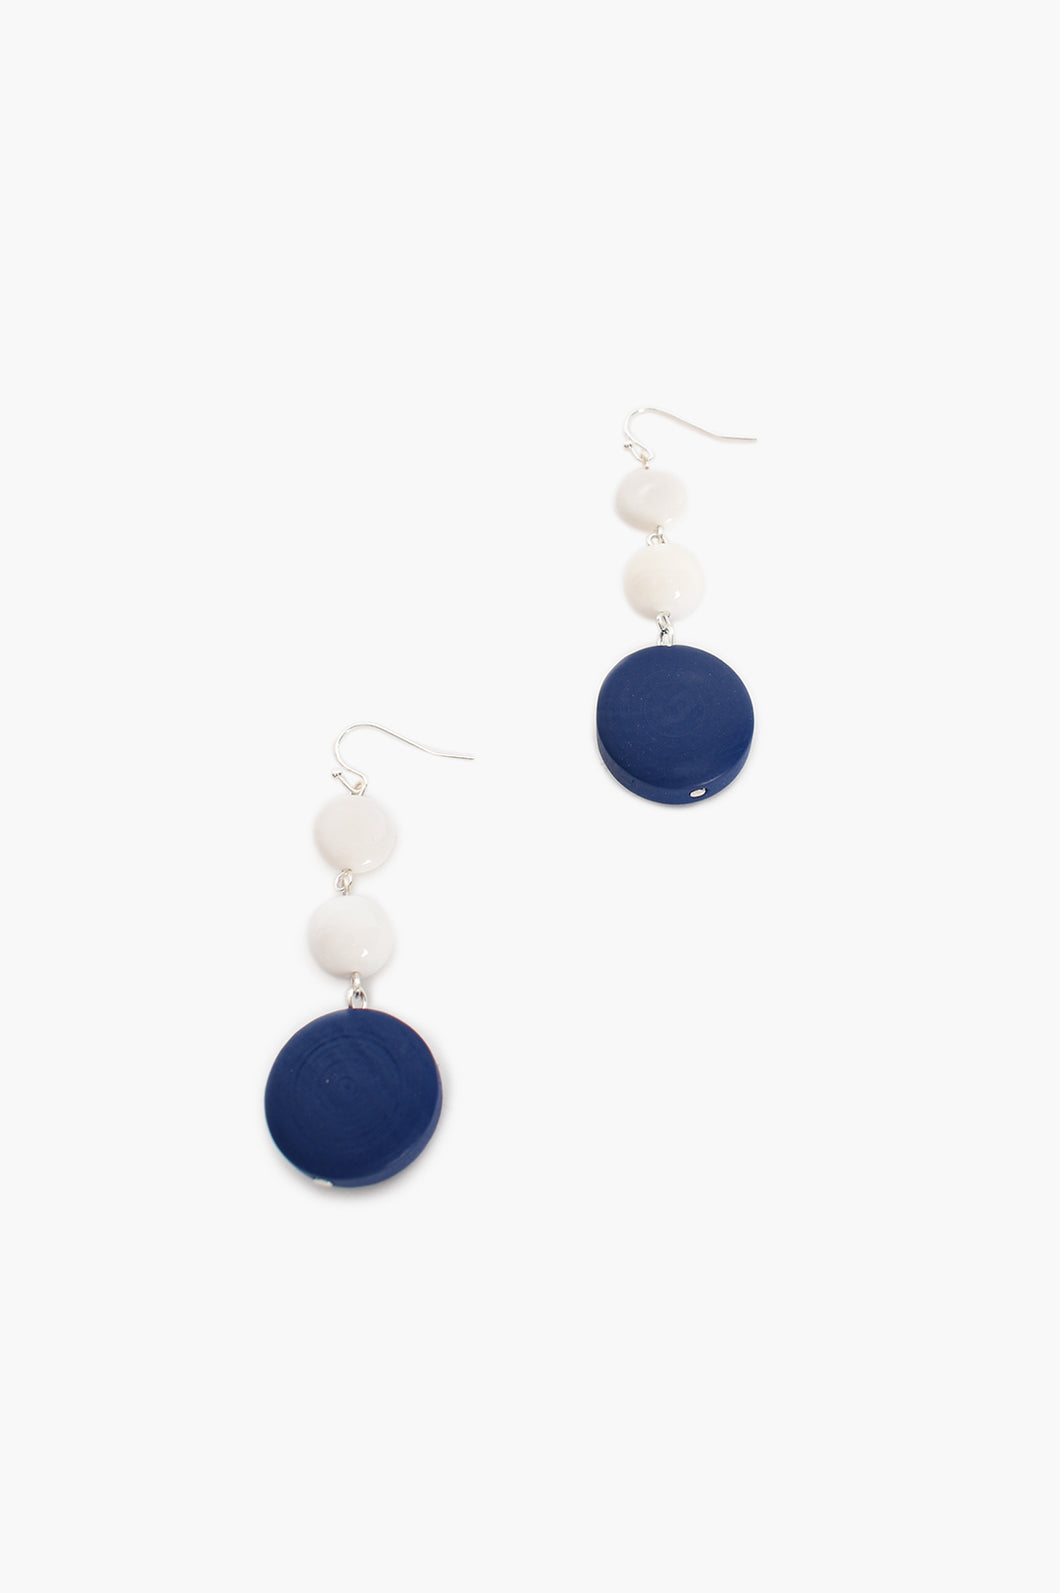 ADORNE - TIMBER GLASS BEAD HOOK EARRINGS - BLUE AND WHITE